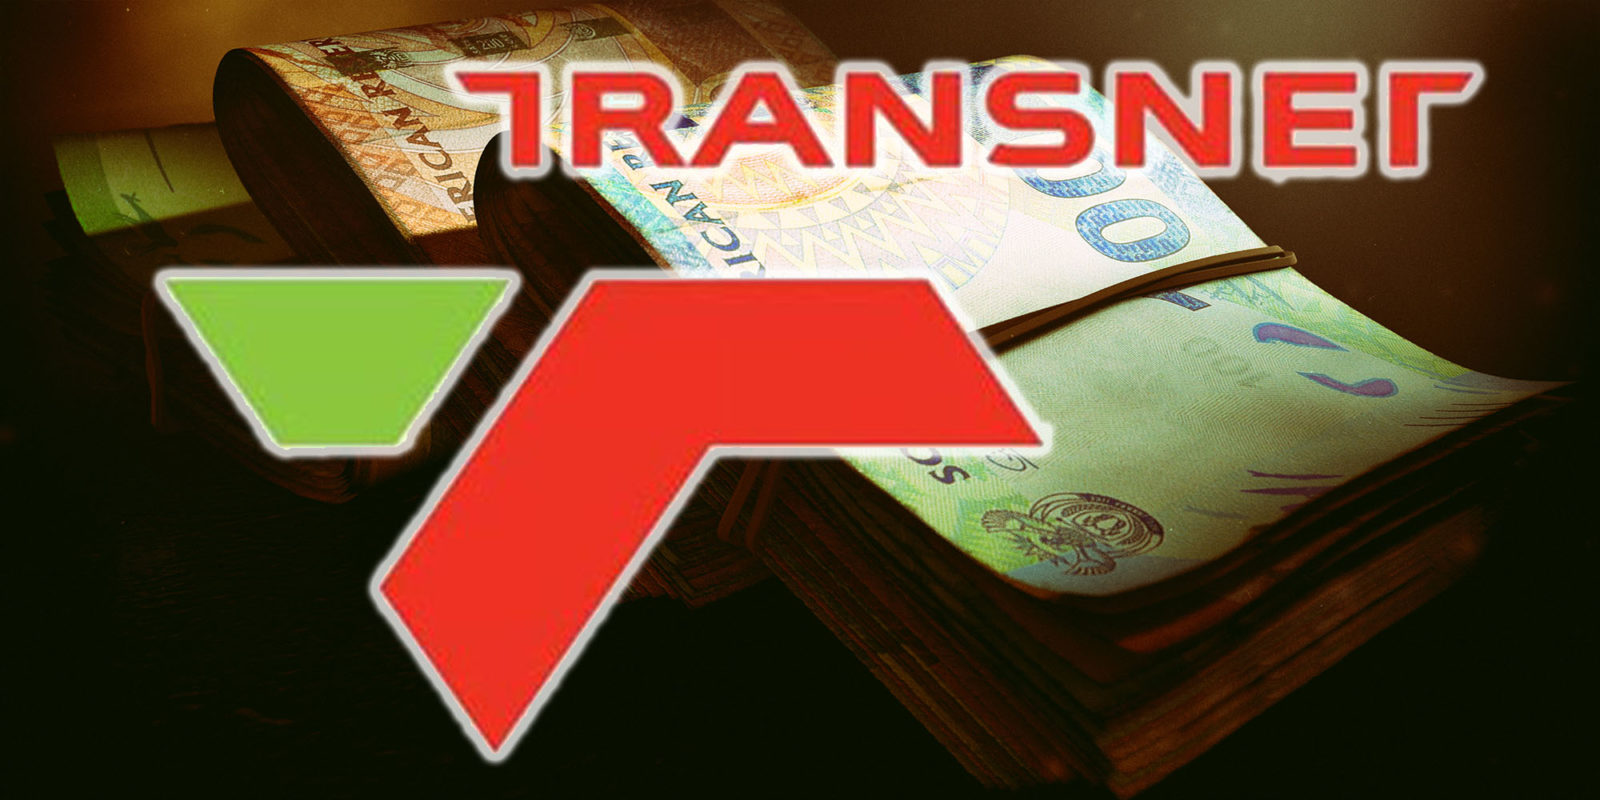 R1 4bn and counting: The extra cost of Transnet's que